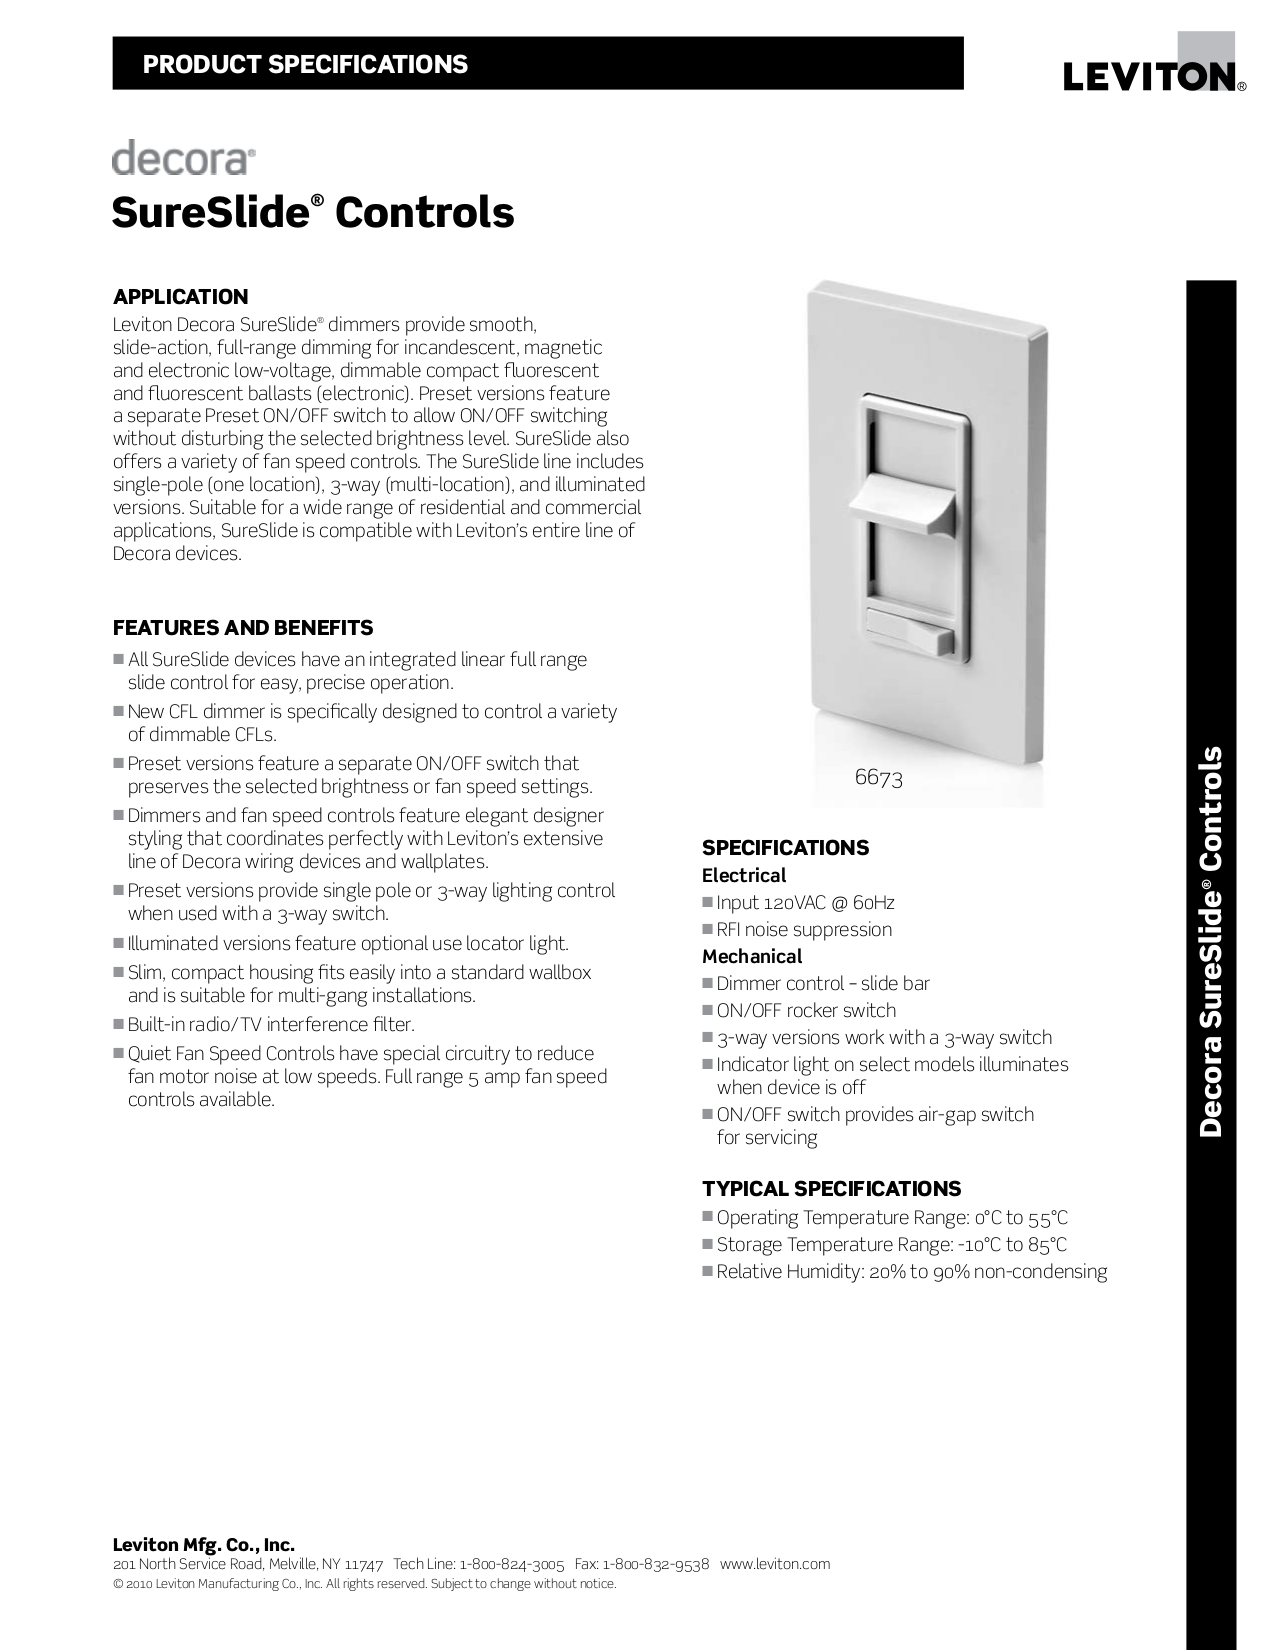 Spec 6673 6631 L 6633 PL 6613 PL 6615 P 6628 6668 6627 1 6637 P 6629 3 6630.pdf 0 download free pdf for leviton sureslide 6631 l dimmers other manual leviton slide dimmer switch wiring diagram at gsmx.co